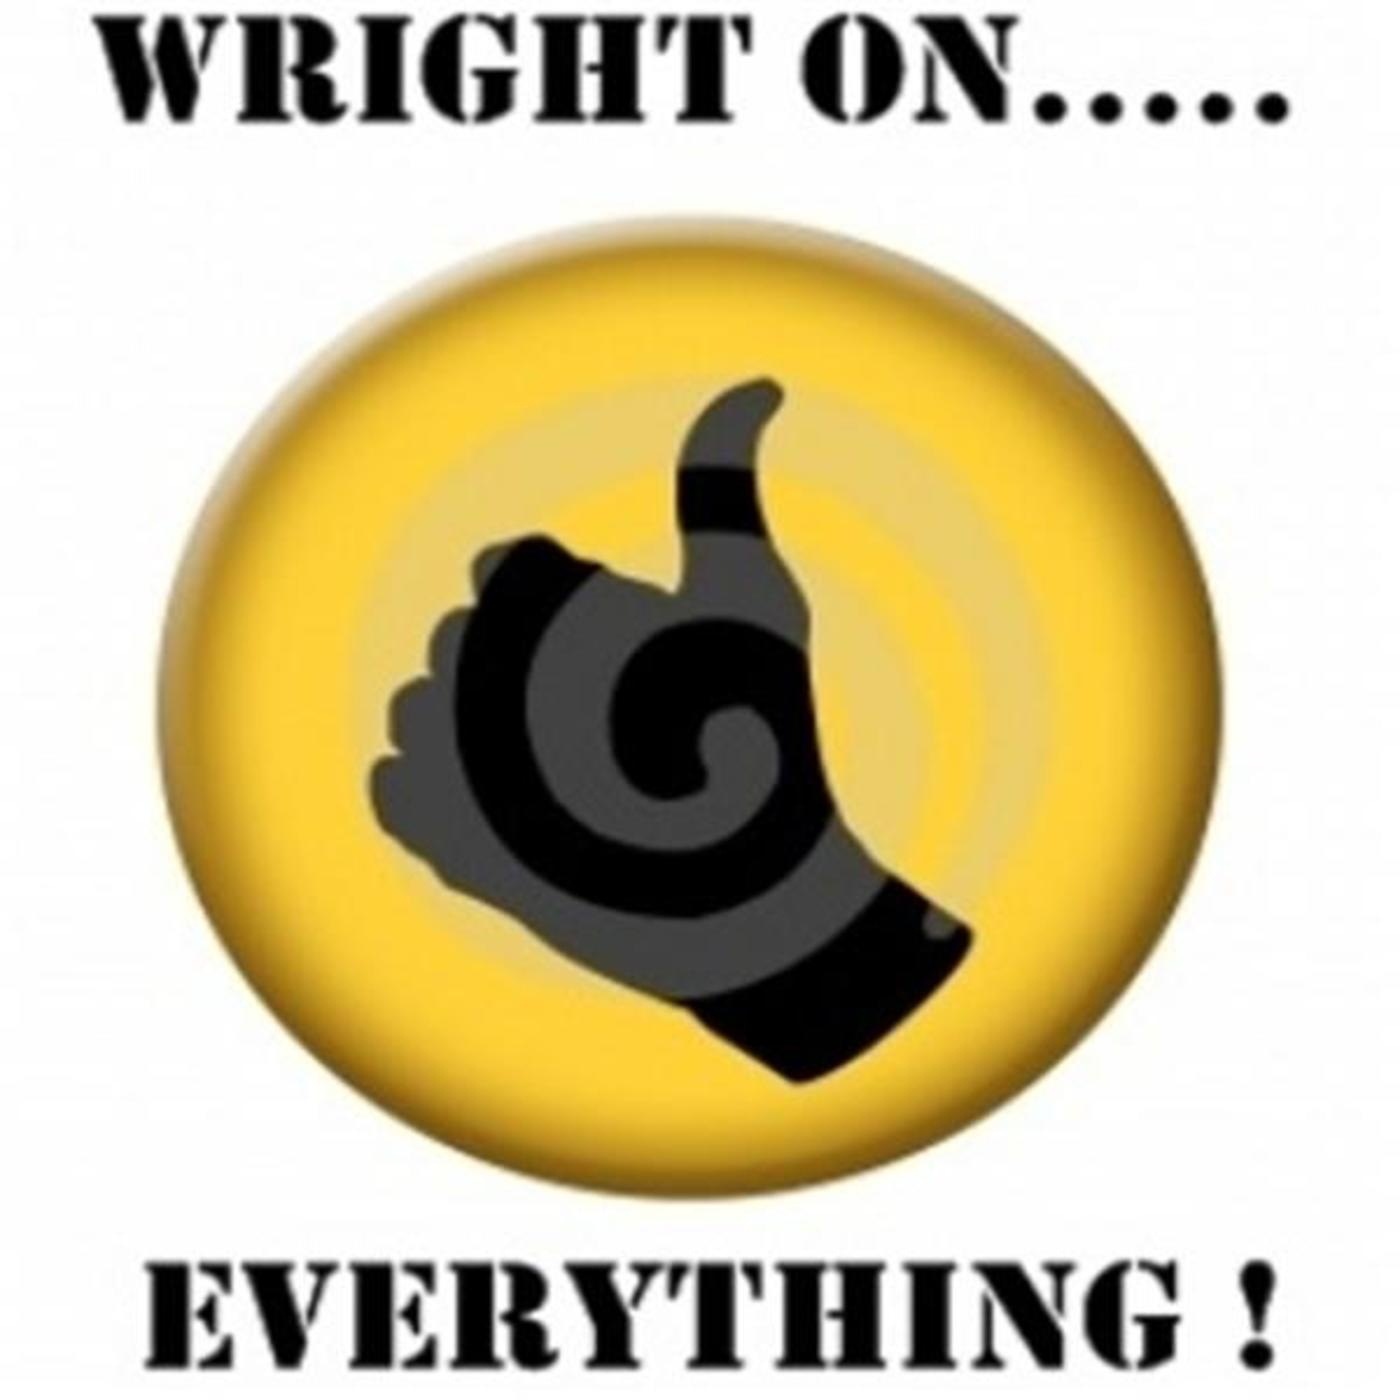 Ron Wright.....Wright on everything!!!!